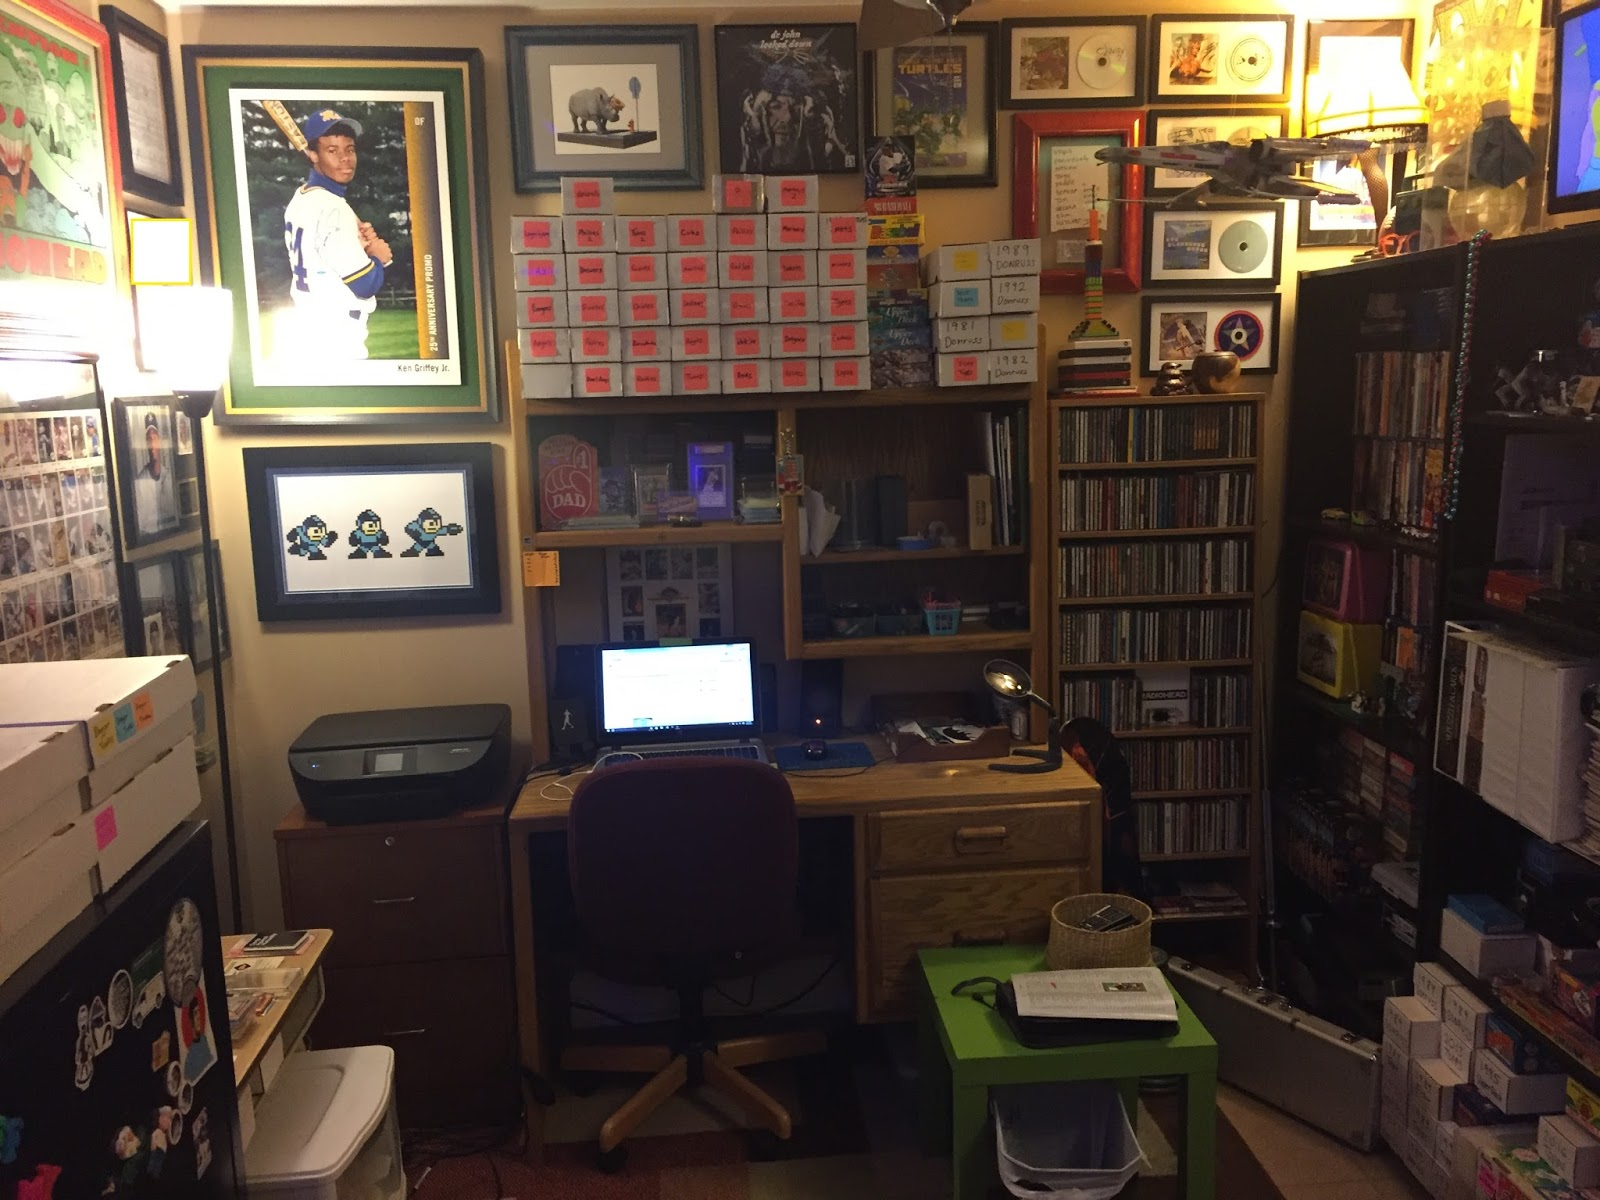 A Year Ago This Month I Had The Unique Opportunity To Turn Whole Room Into My Own Collecting Dungeon Office Man Cave Now That Has Passed